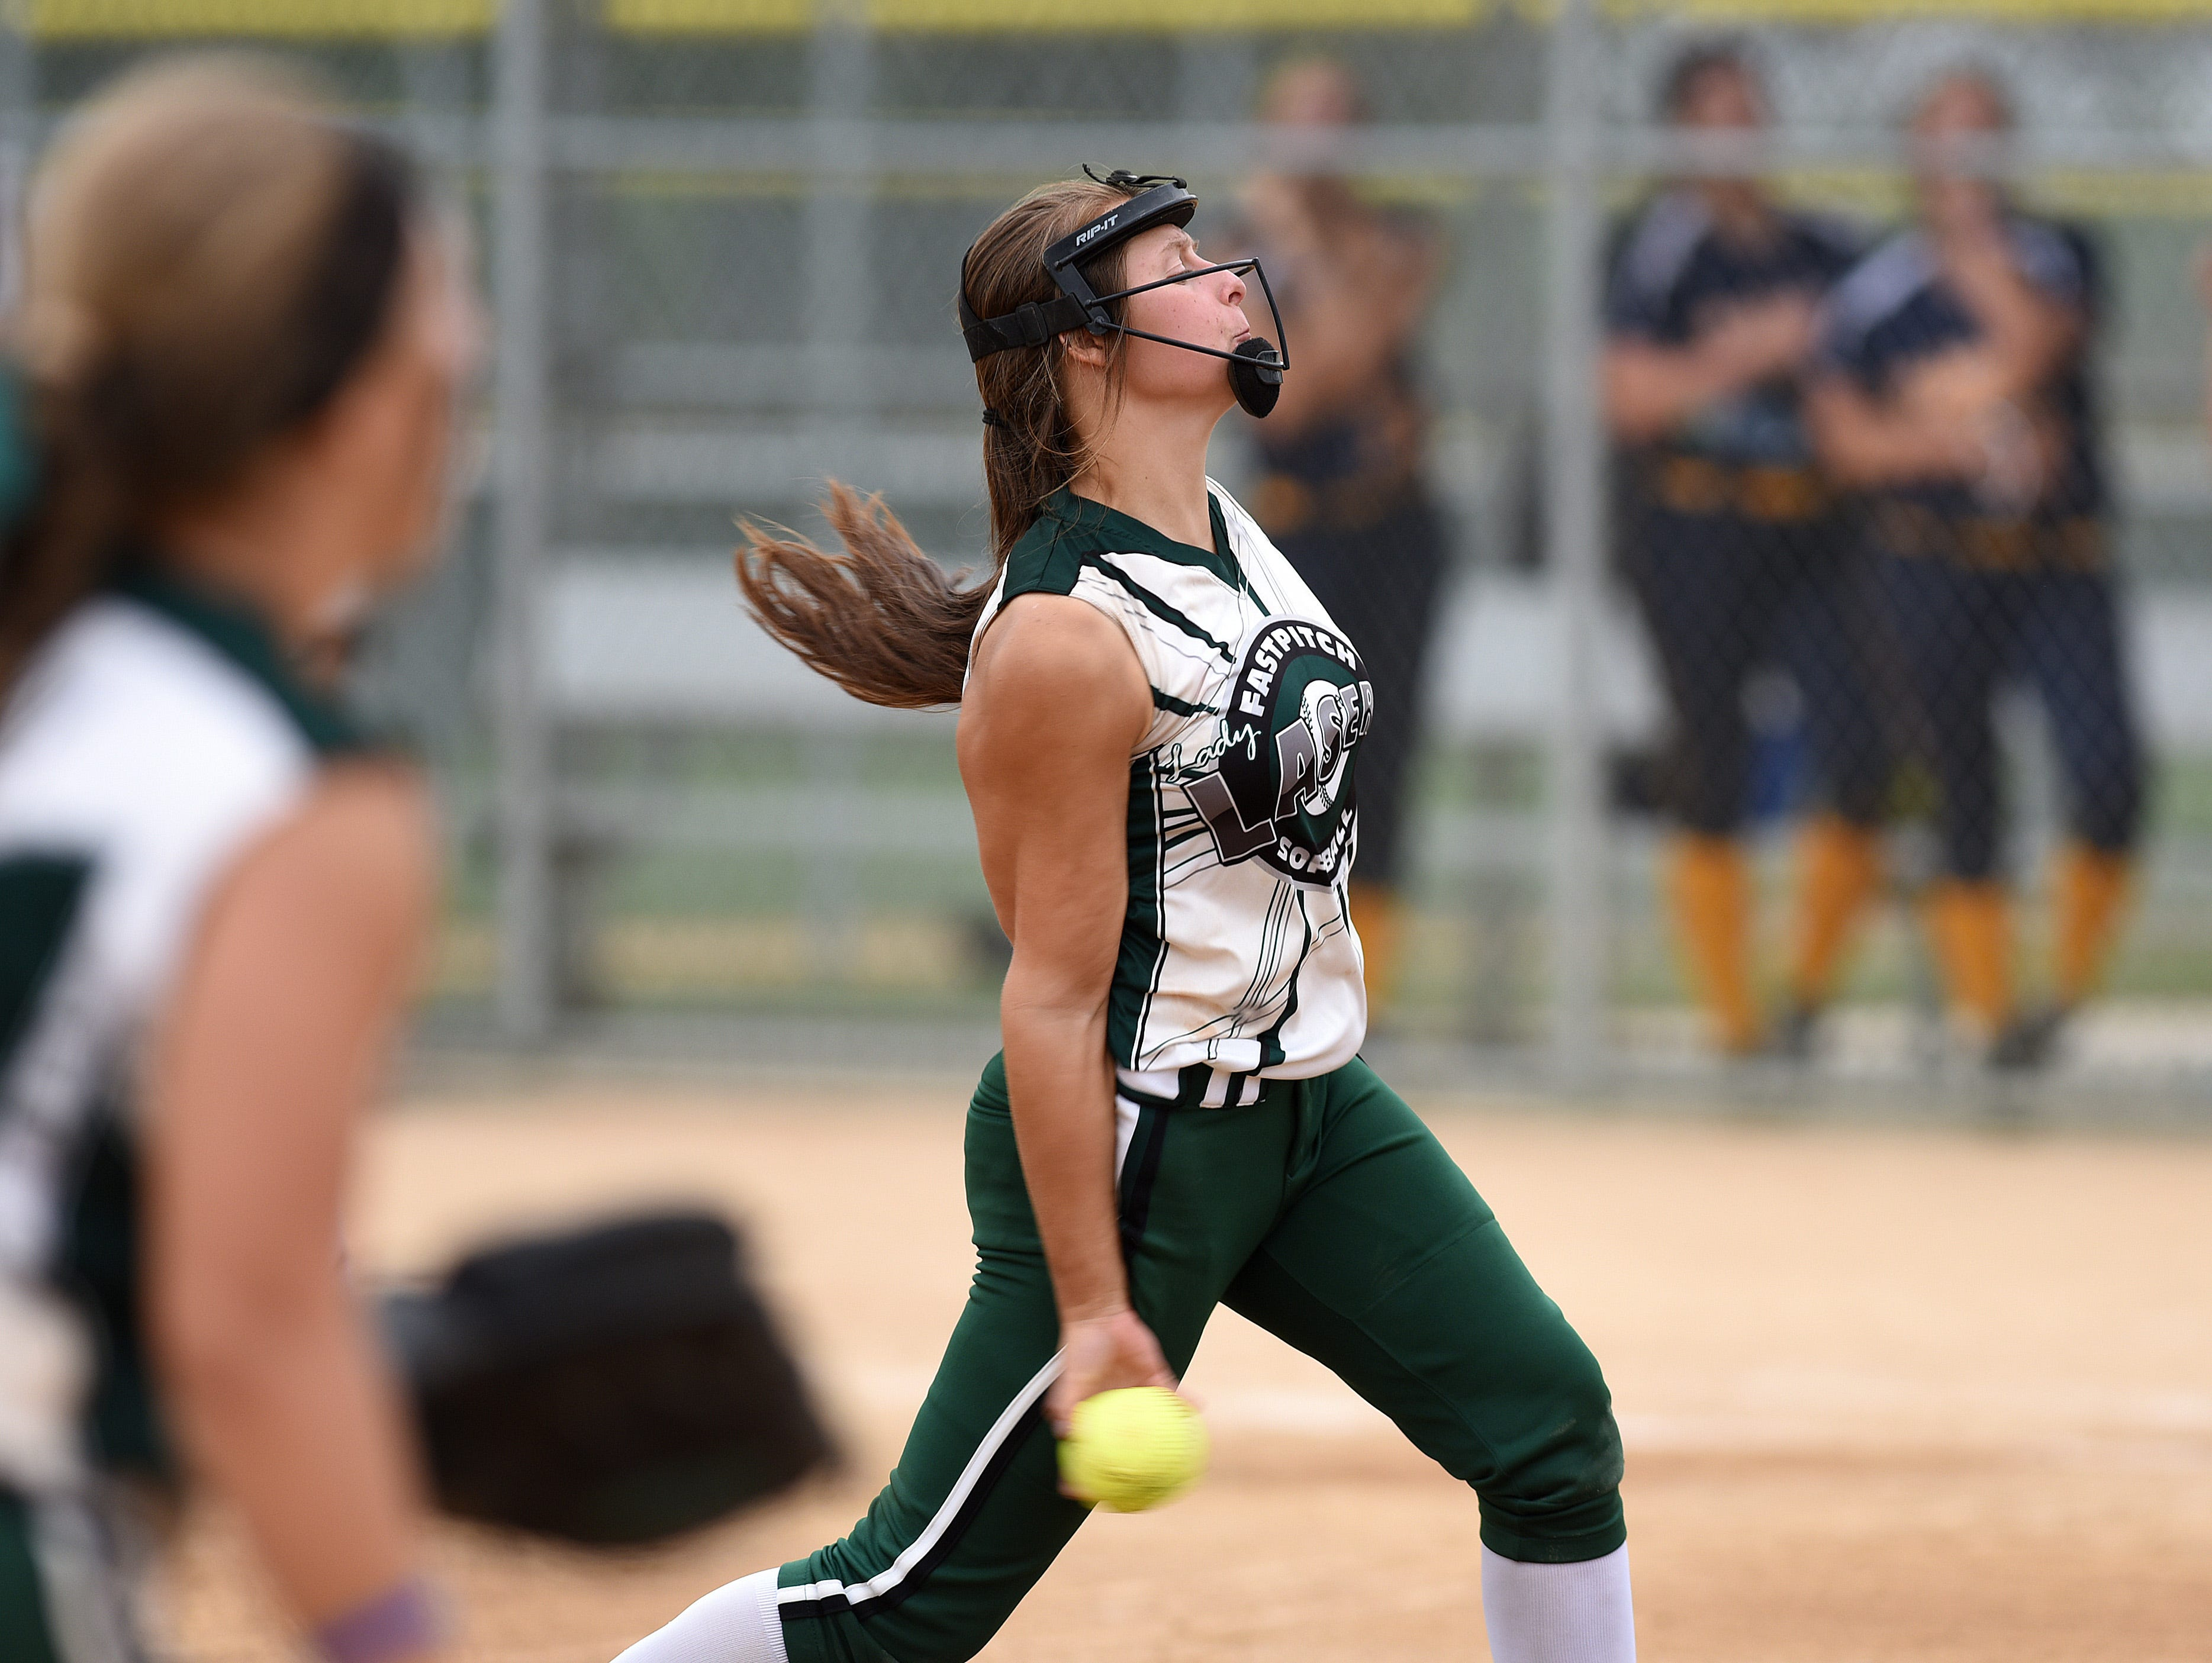 Ohio Lady Lasers Green's #13 Harlie Vannatter pitches against New Lenox Lighting during the ASA 14U national softball tournament at Sherman Park in Sioux Falls, S.D., Monday, Aug. 1, 2016.